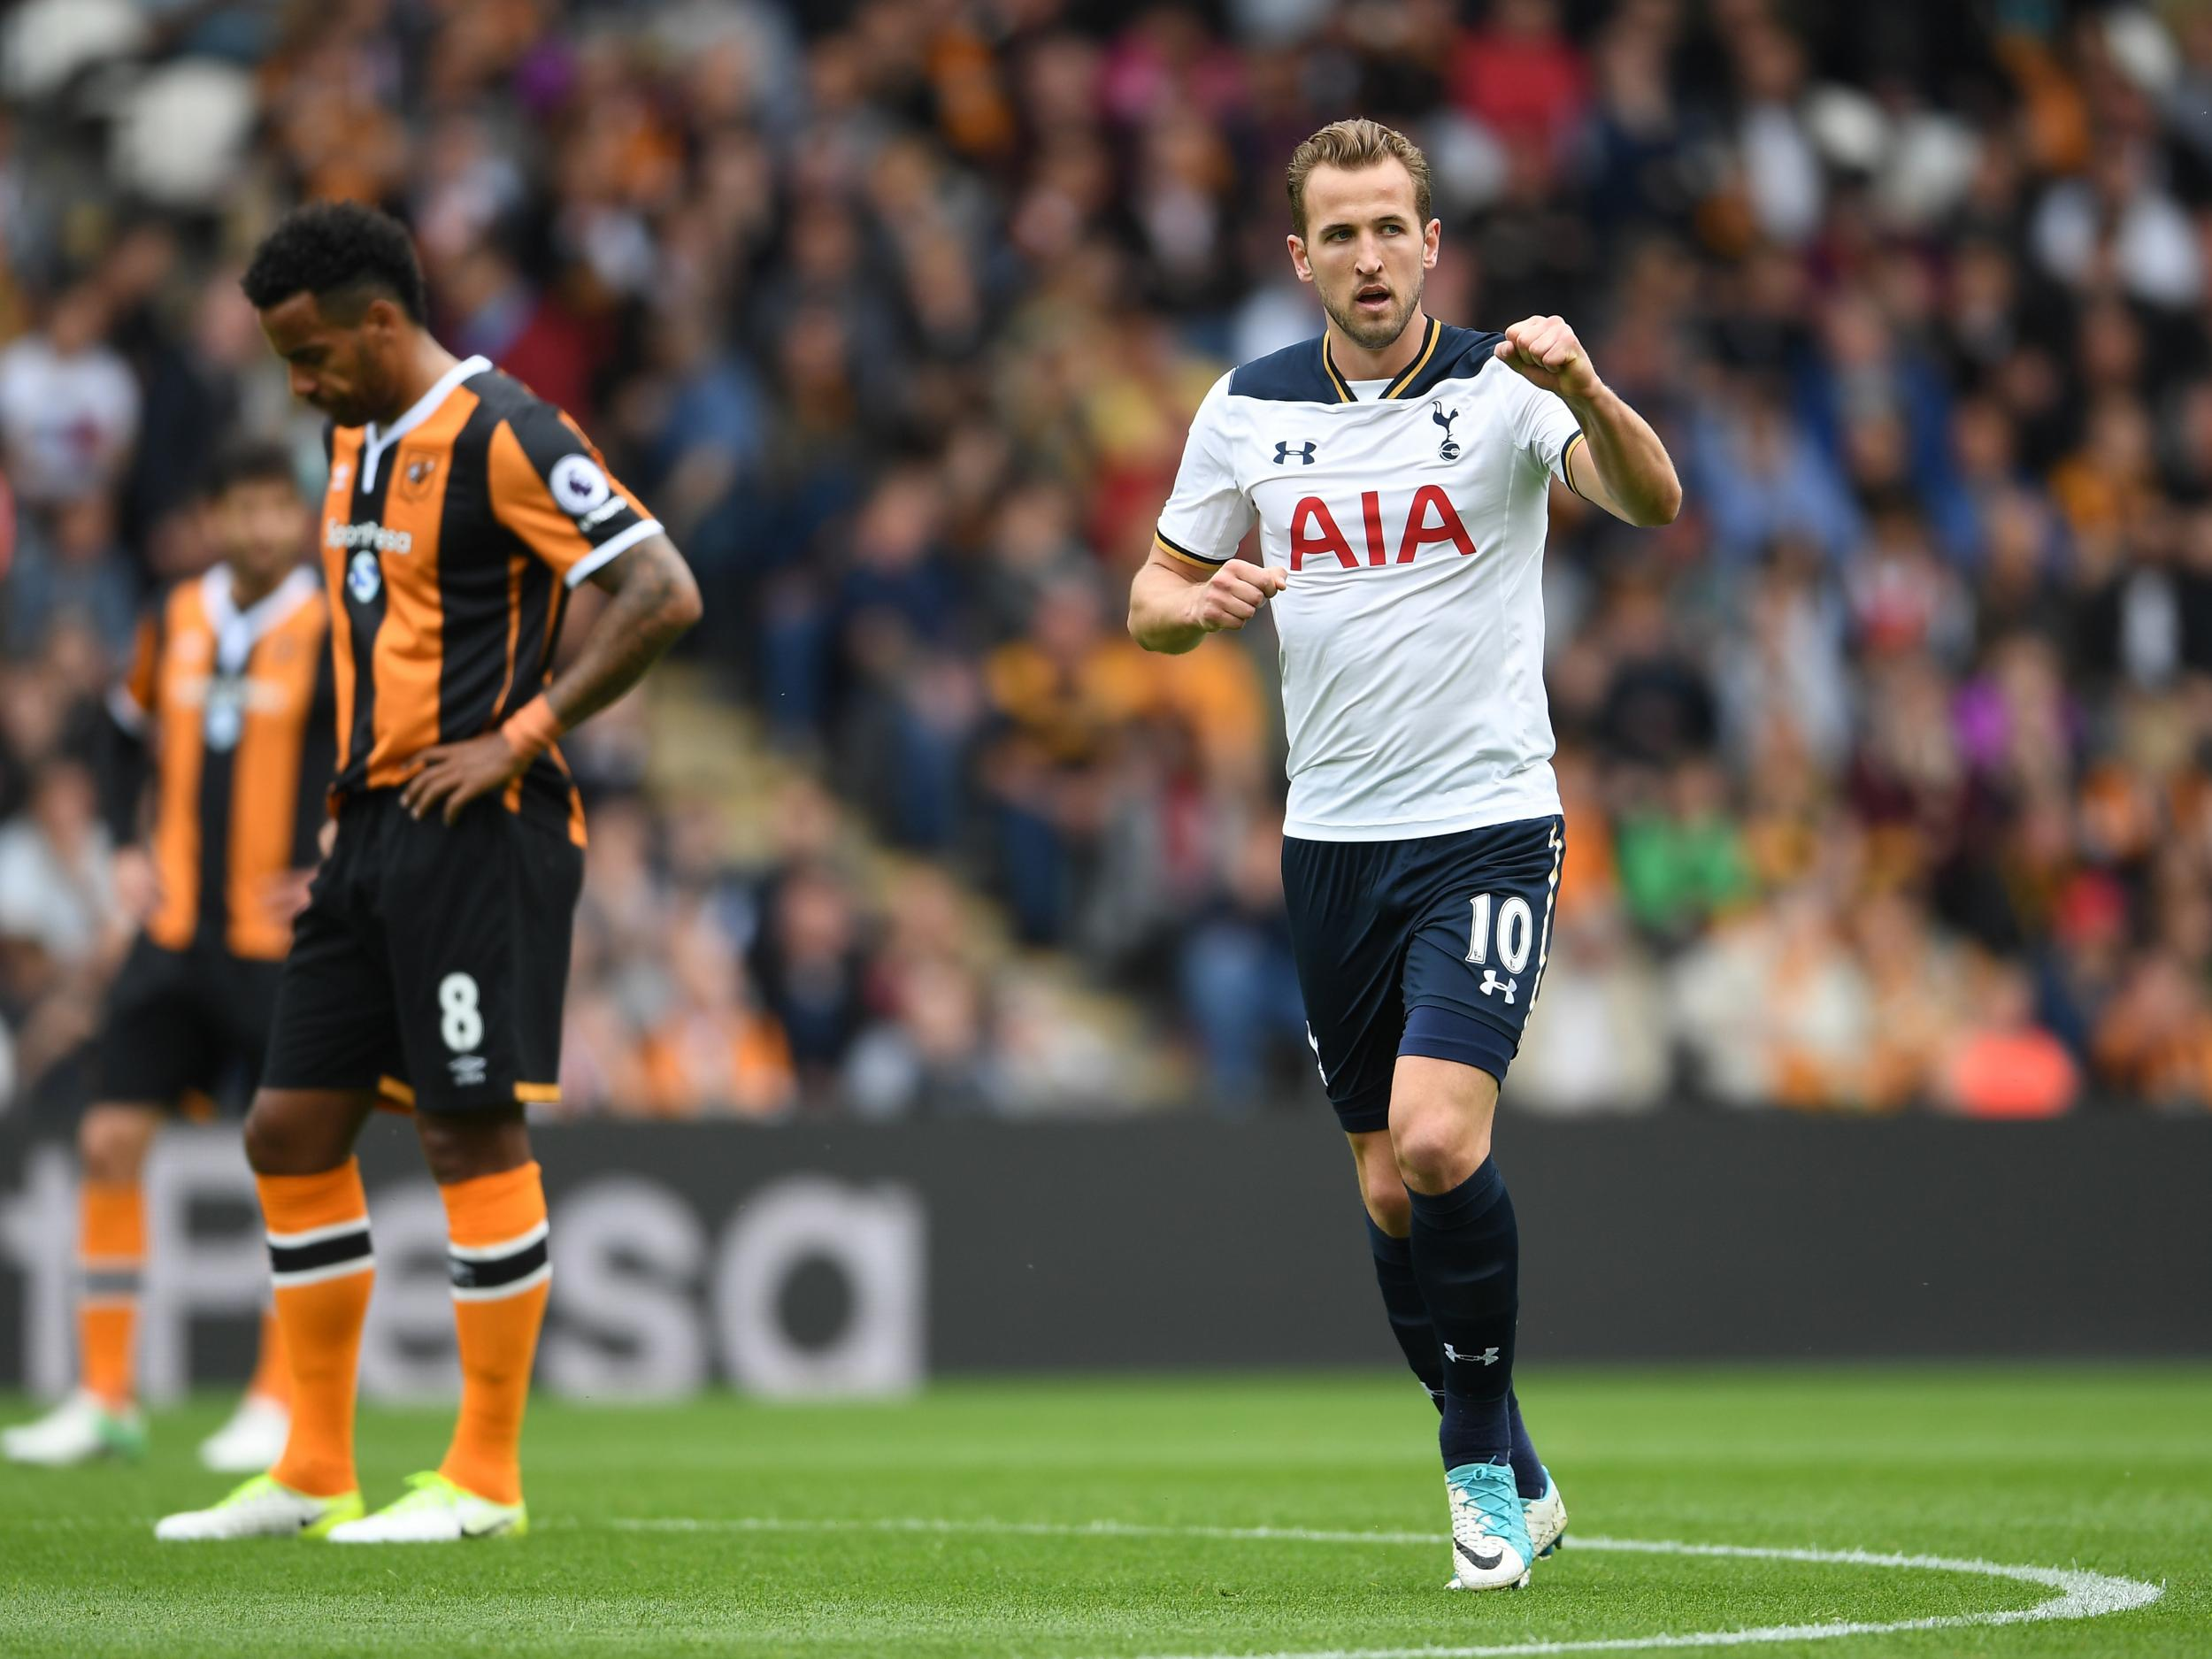 Tottenham striker Harry Kane wins the Premier League's Golden Boot for the second season in a row